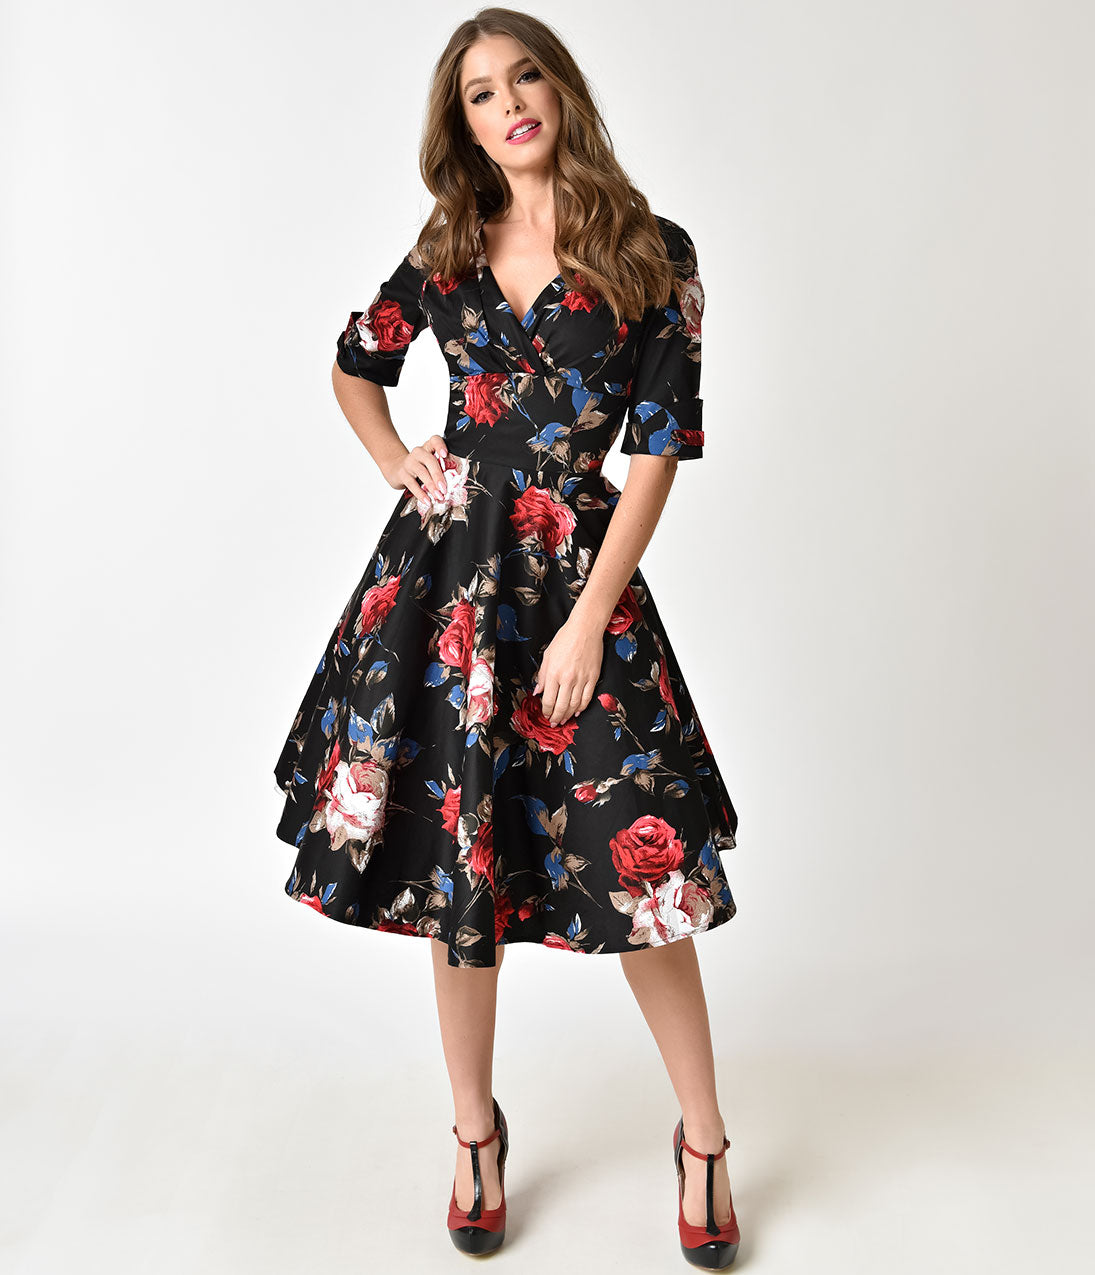 1950s Swing Dresses | 50s Swing Dress Unique Vintage 1950S Black  Red Floral Delores Swing Dress With Sleeves $74.00 AT vintagedancer.com